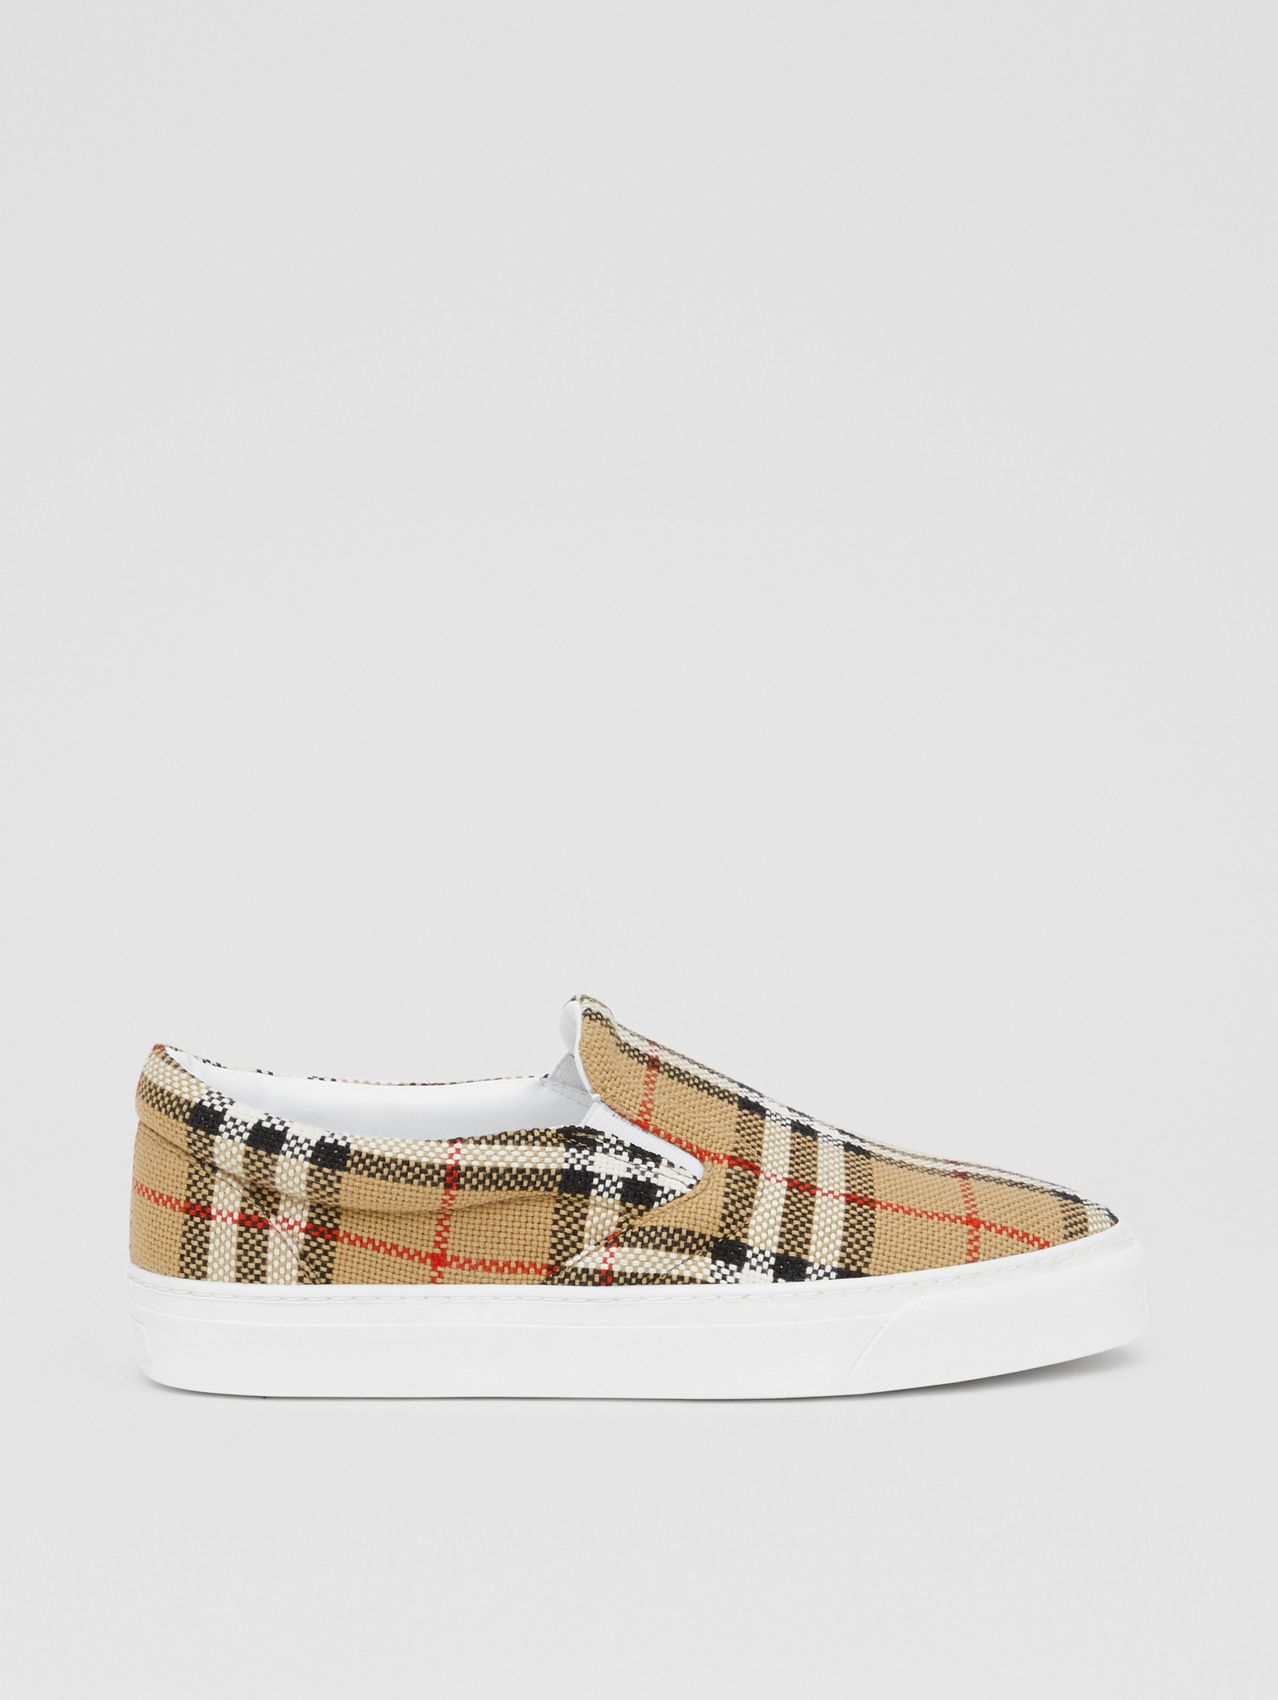 Latticed Cotton Slip-on Sneakers in Archive Beige